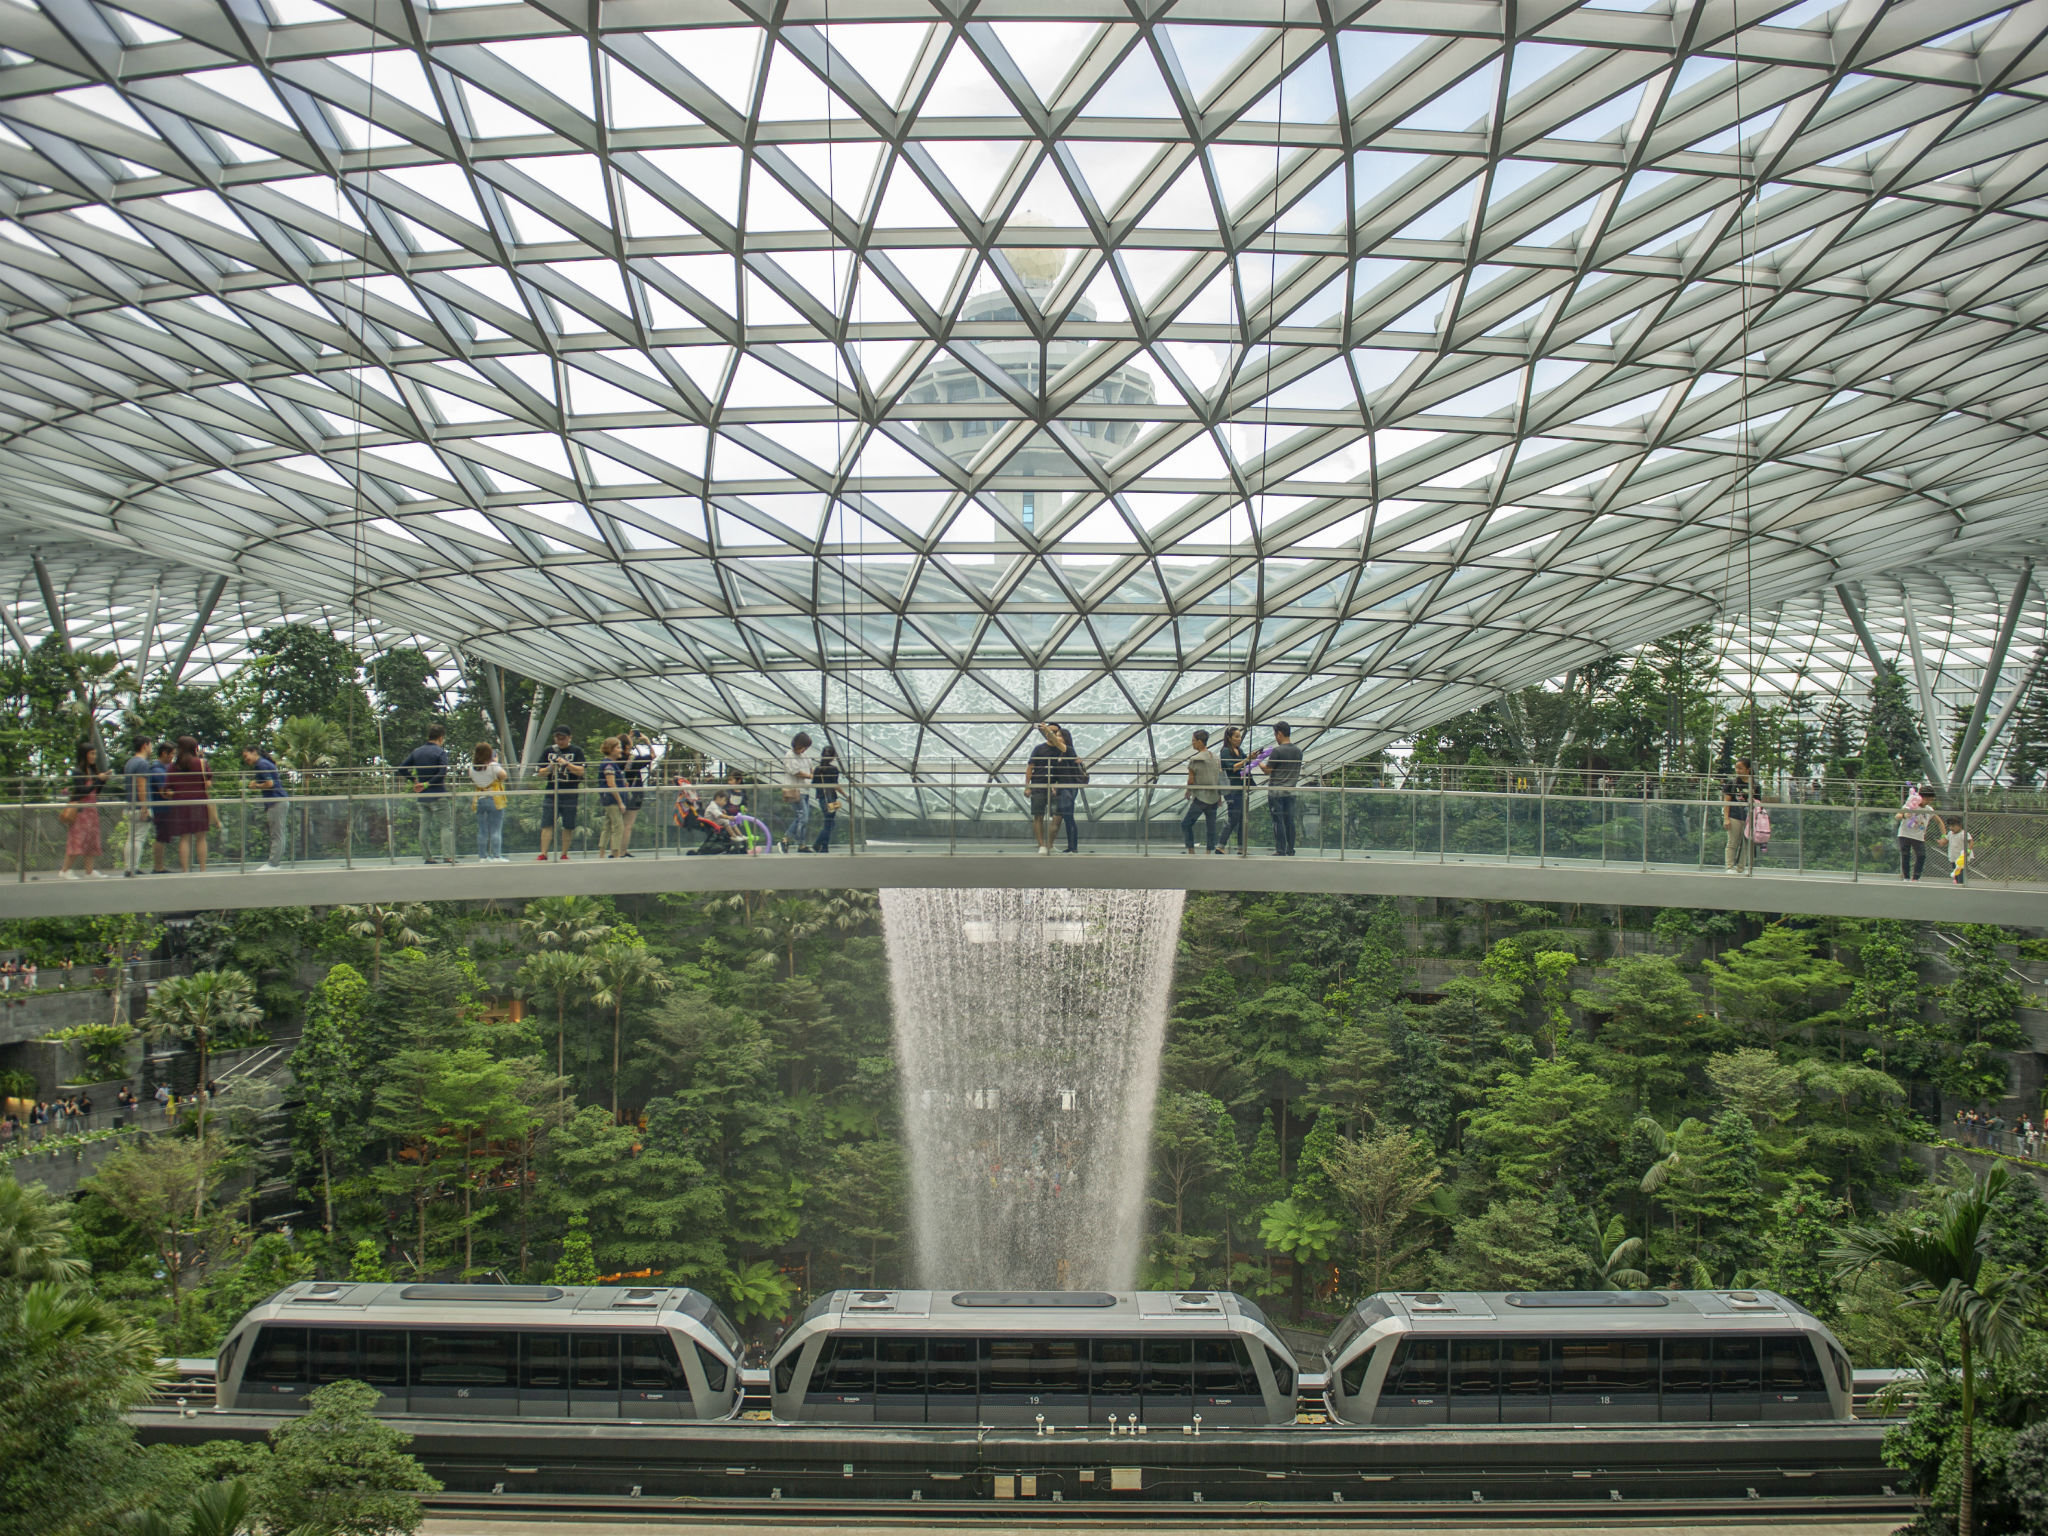 Have you seen Singapore's insane tropical airport?